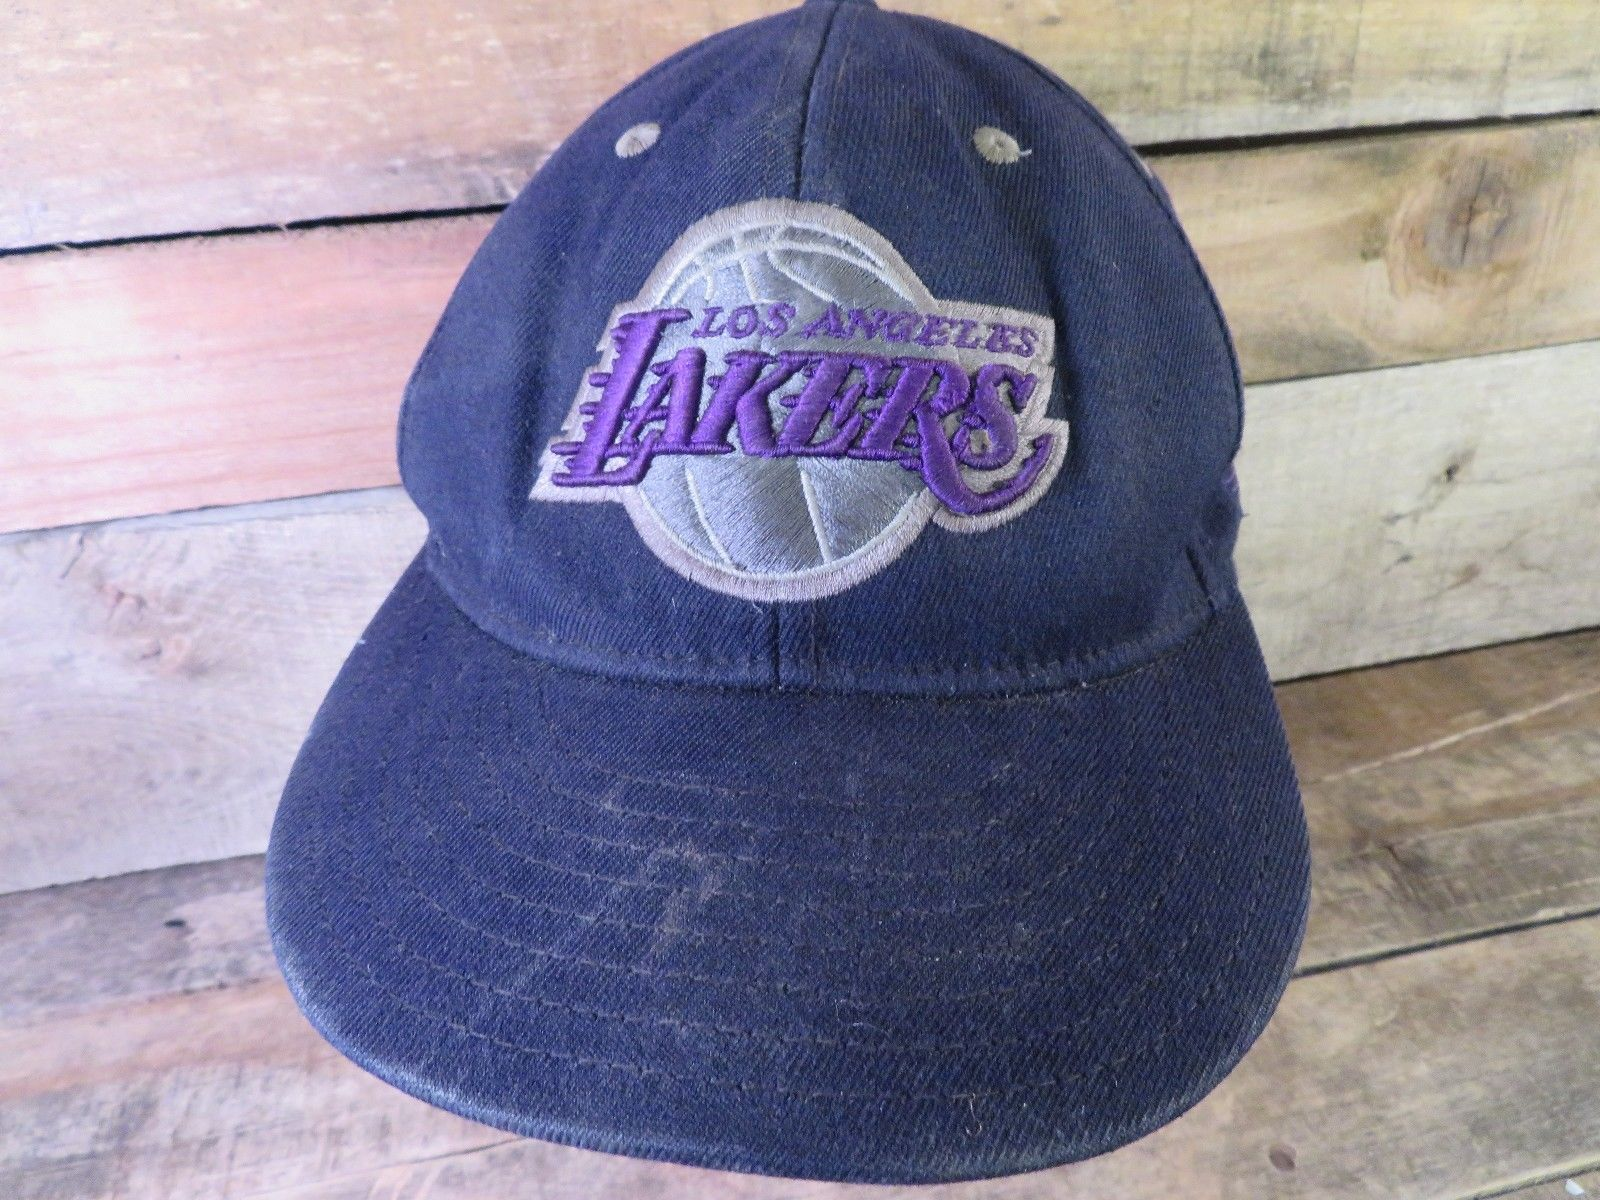 Los Angeles LAKERS Adidas NBA Fitted Size L/XL Baseball Hat Adult Cap